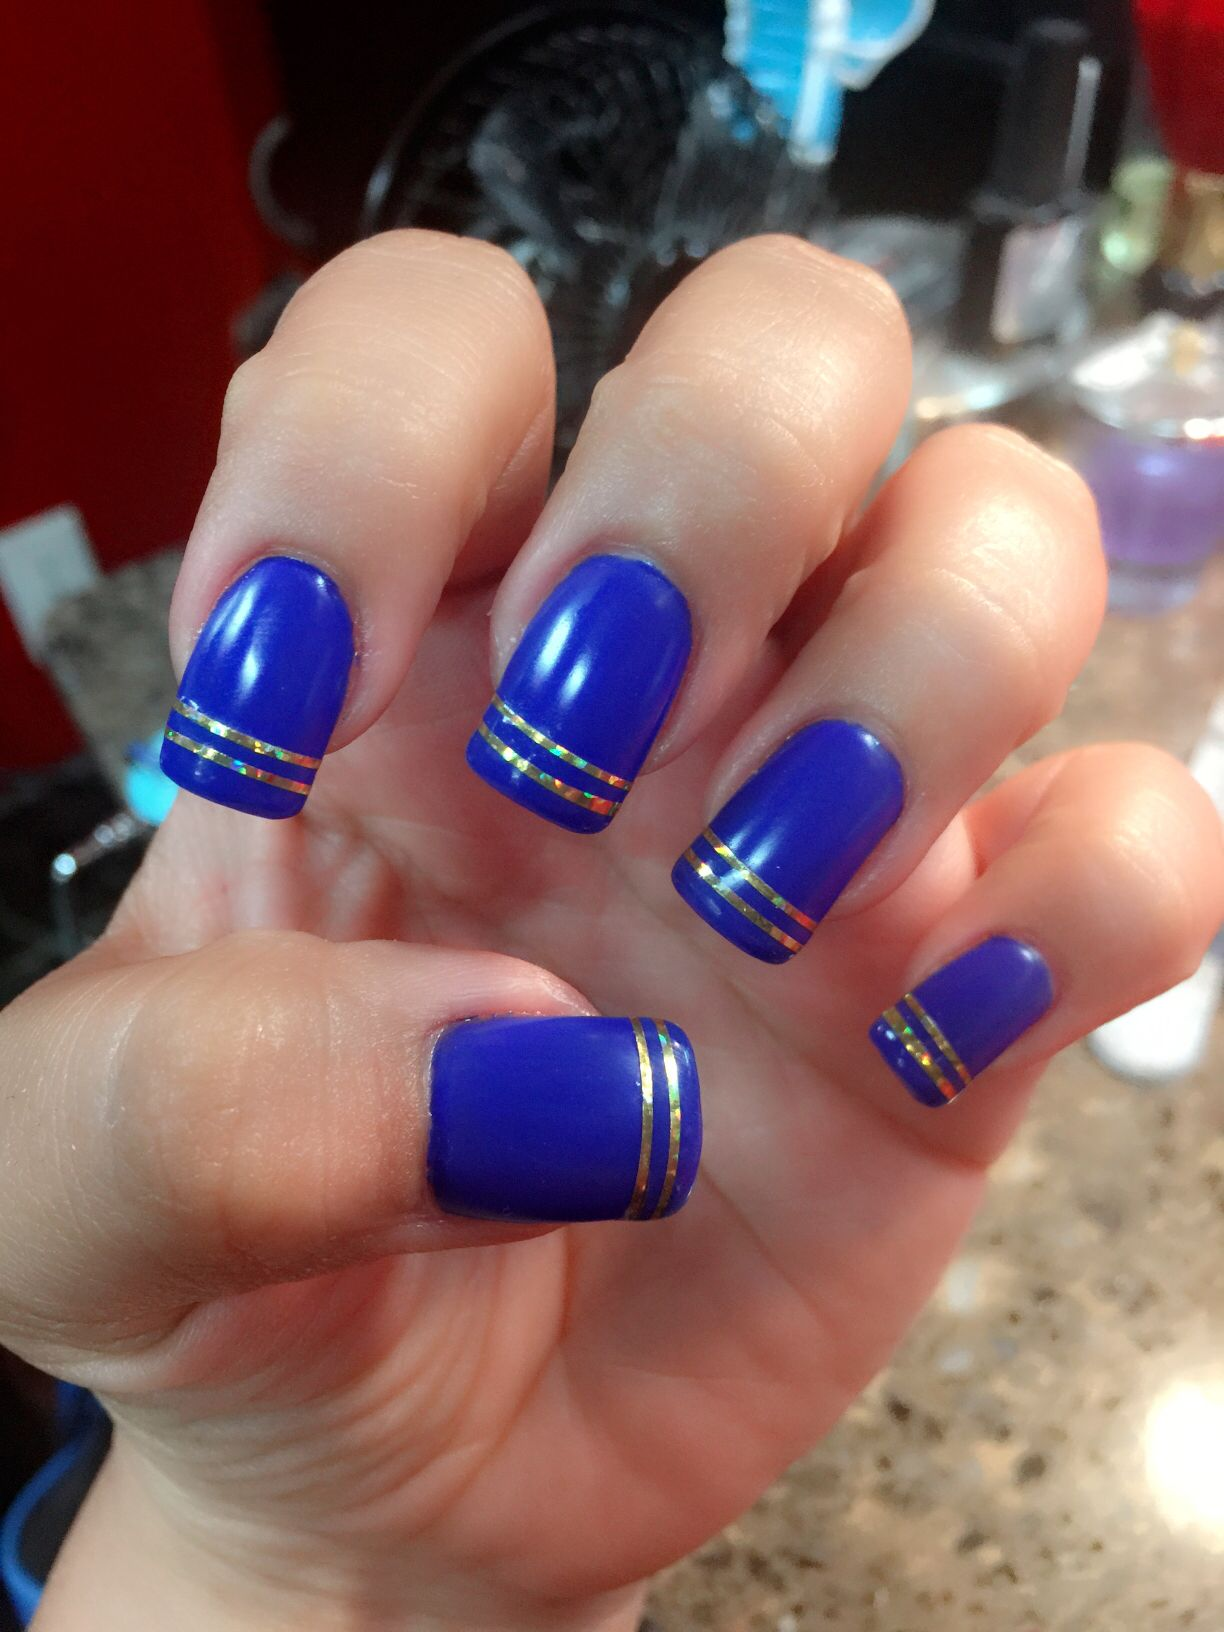 January 2016 nails Blue and gold nail design Matt with glossy tips ...